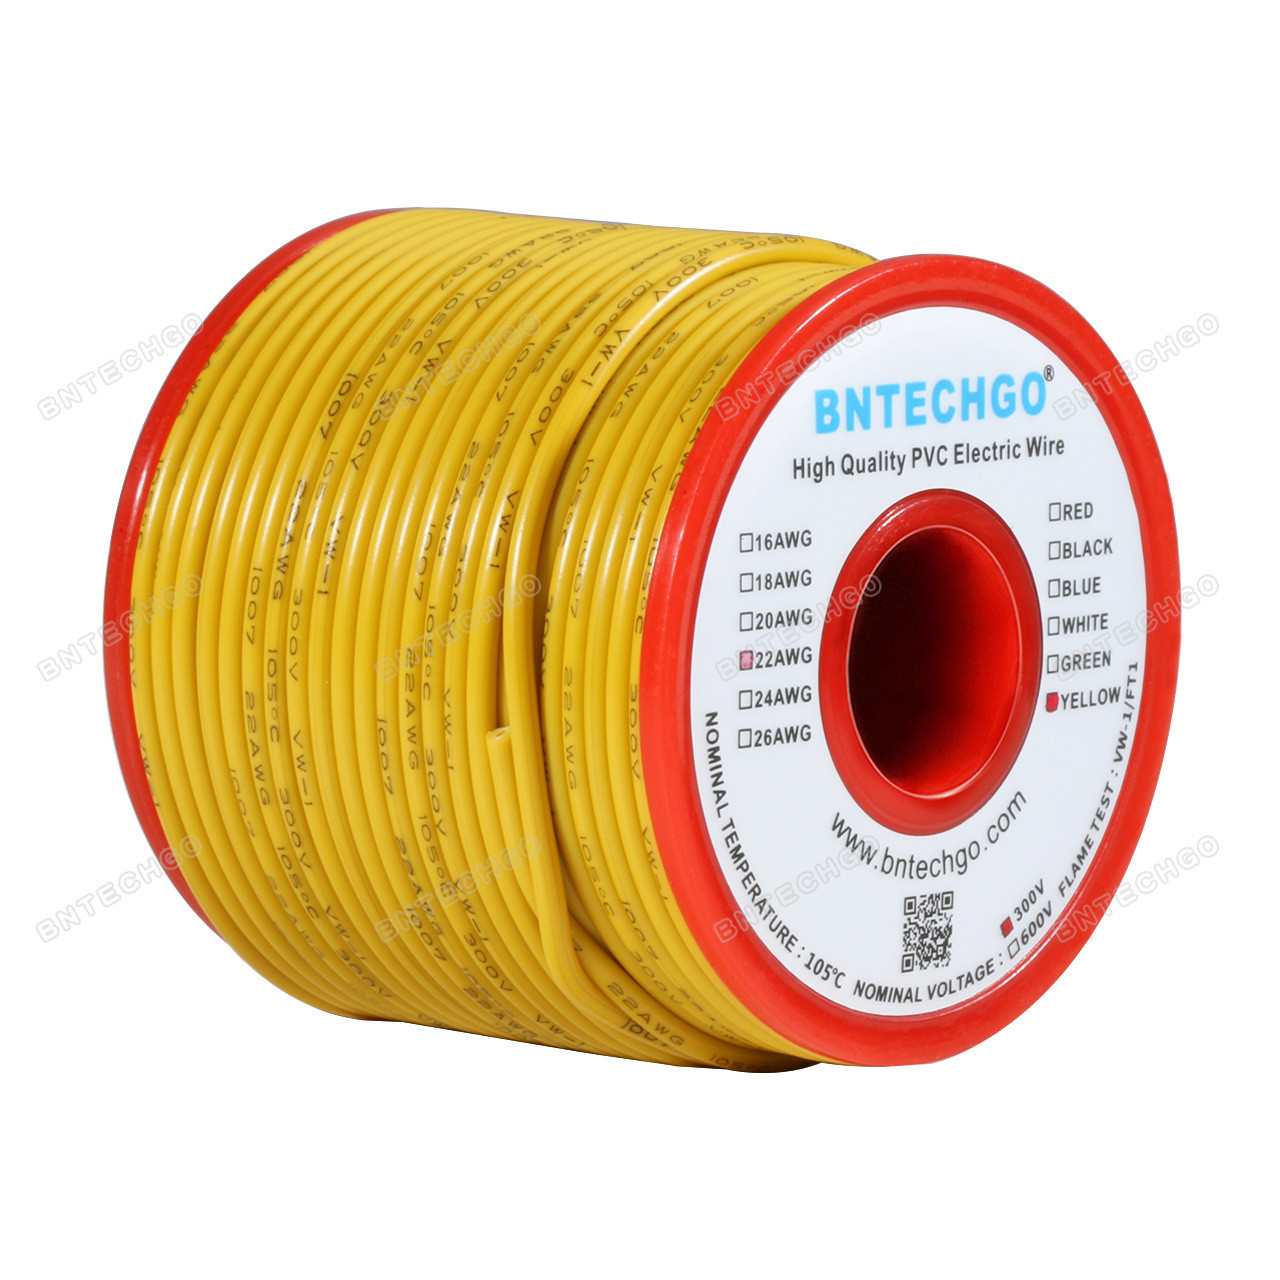 BNTECHGO 22 AWG 1007 Electric Wire 22 Gauge PVC 1007 Wire Solid Wire Hook Up Wire 300V Solid Tinned Copper Wire Green 25 ft Per Reel for DIY